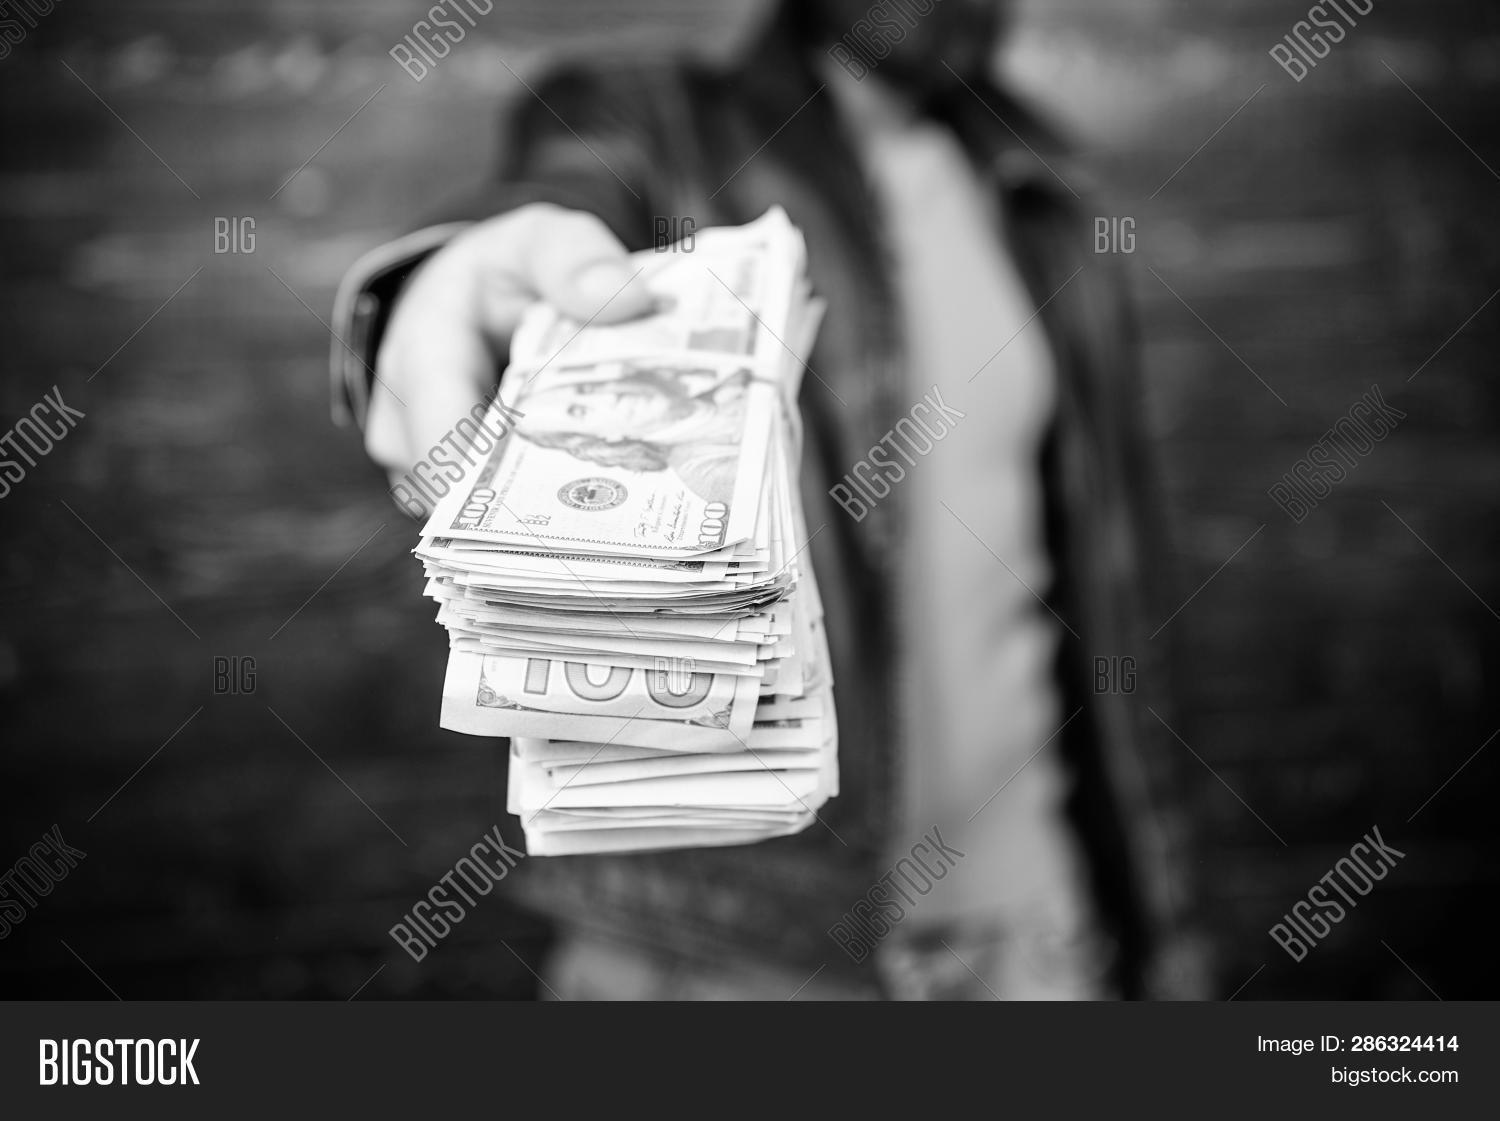 bank,banknotes,bearded,black,bribe,brutal,bunch,business,buy,cash,currency,dealer,dollar,earn,financial,give,guy,hand,has,hipster,hold,illegal,investing,investment,jacket,lawless,leather,mafia,man,masculine,money,offer,profit,richness,safe,safety,salary,savings,success,successful,transaction,trust,unlawful,unshaven,wear,wellbeing,wrongful